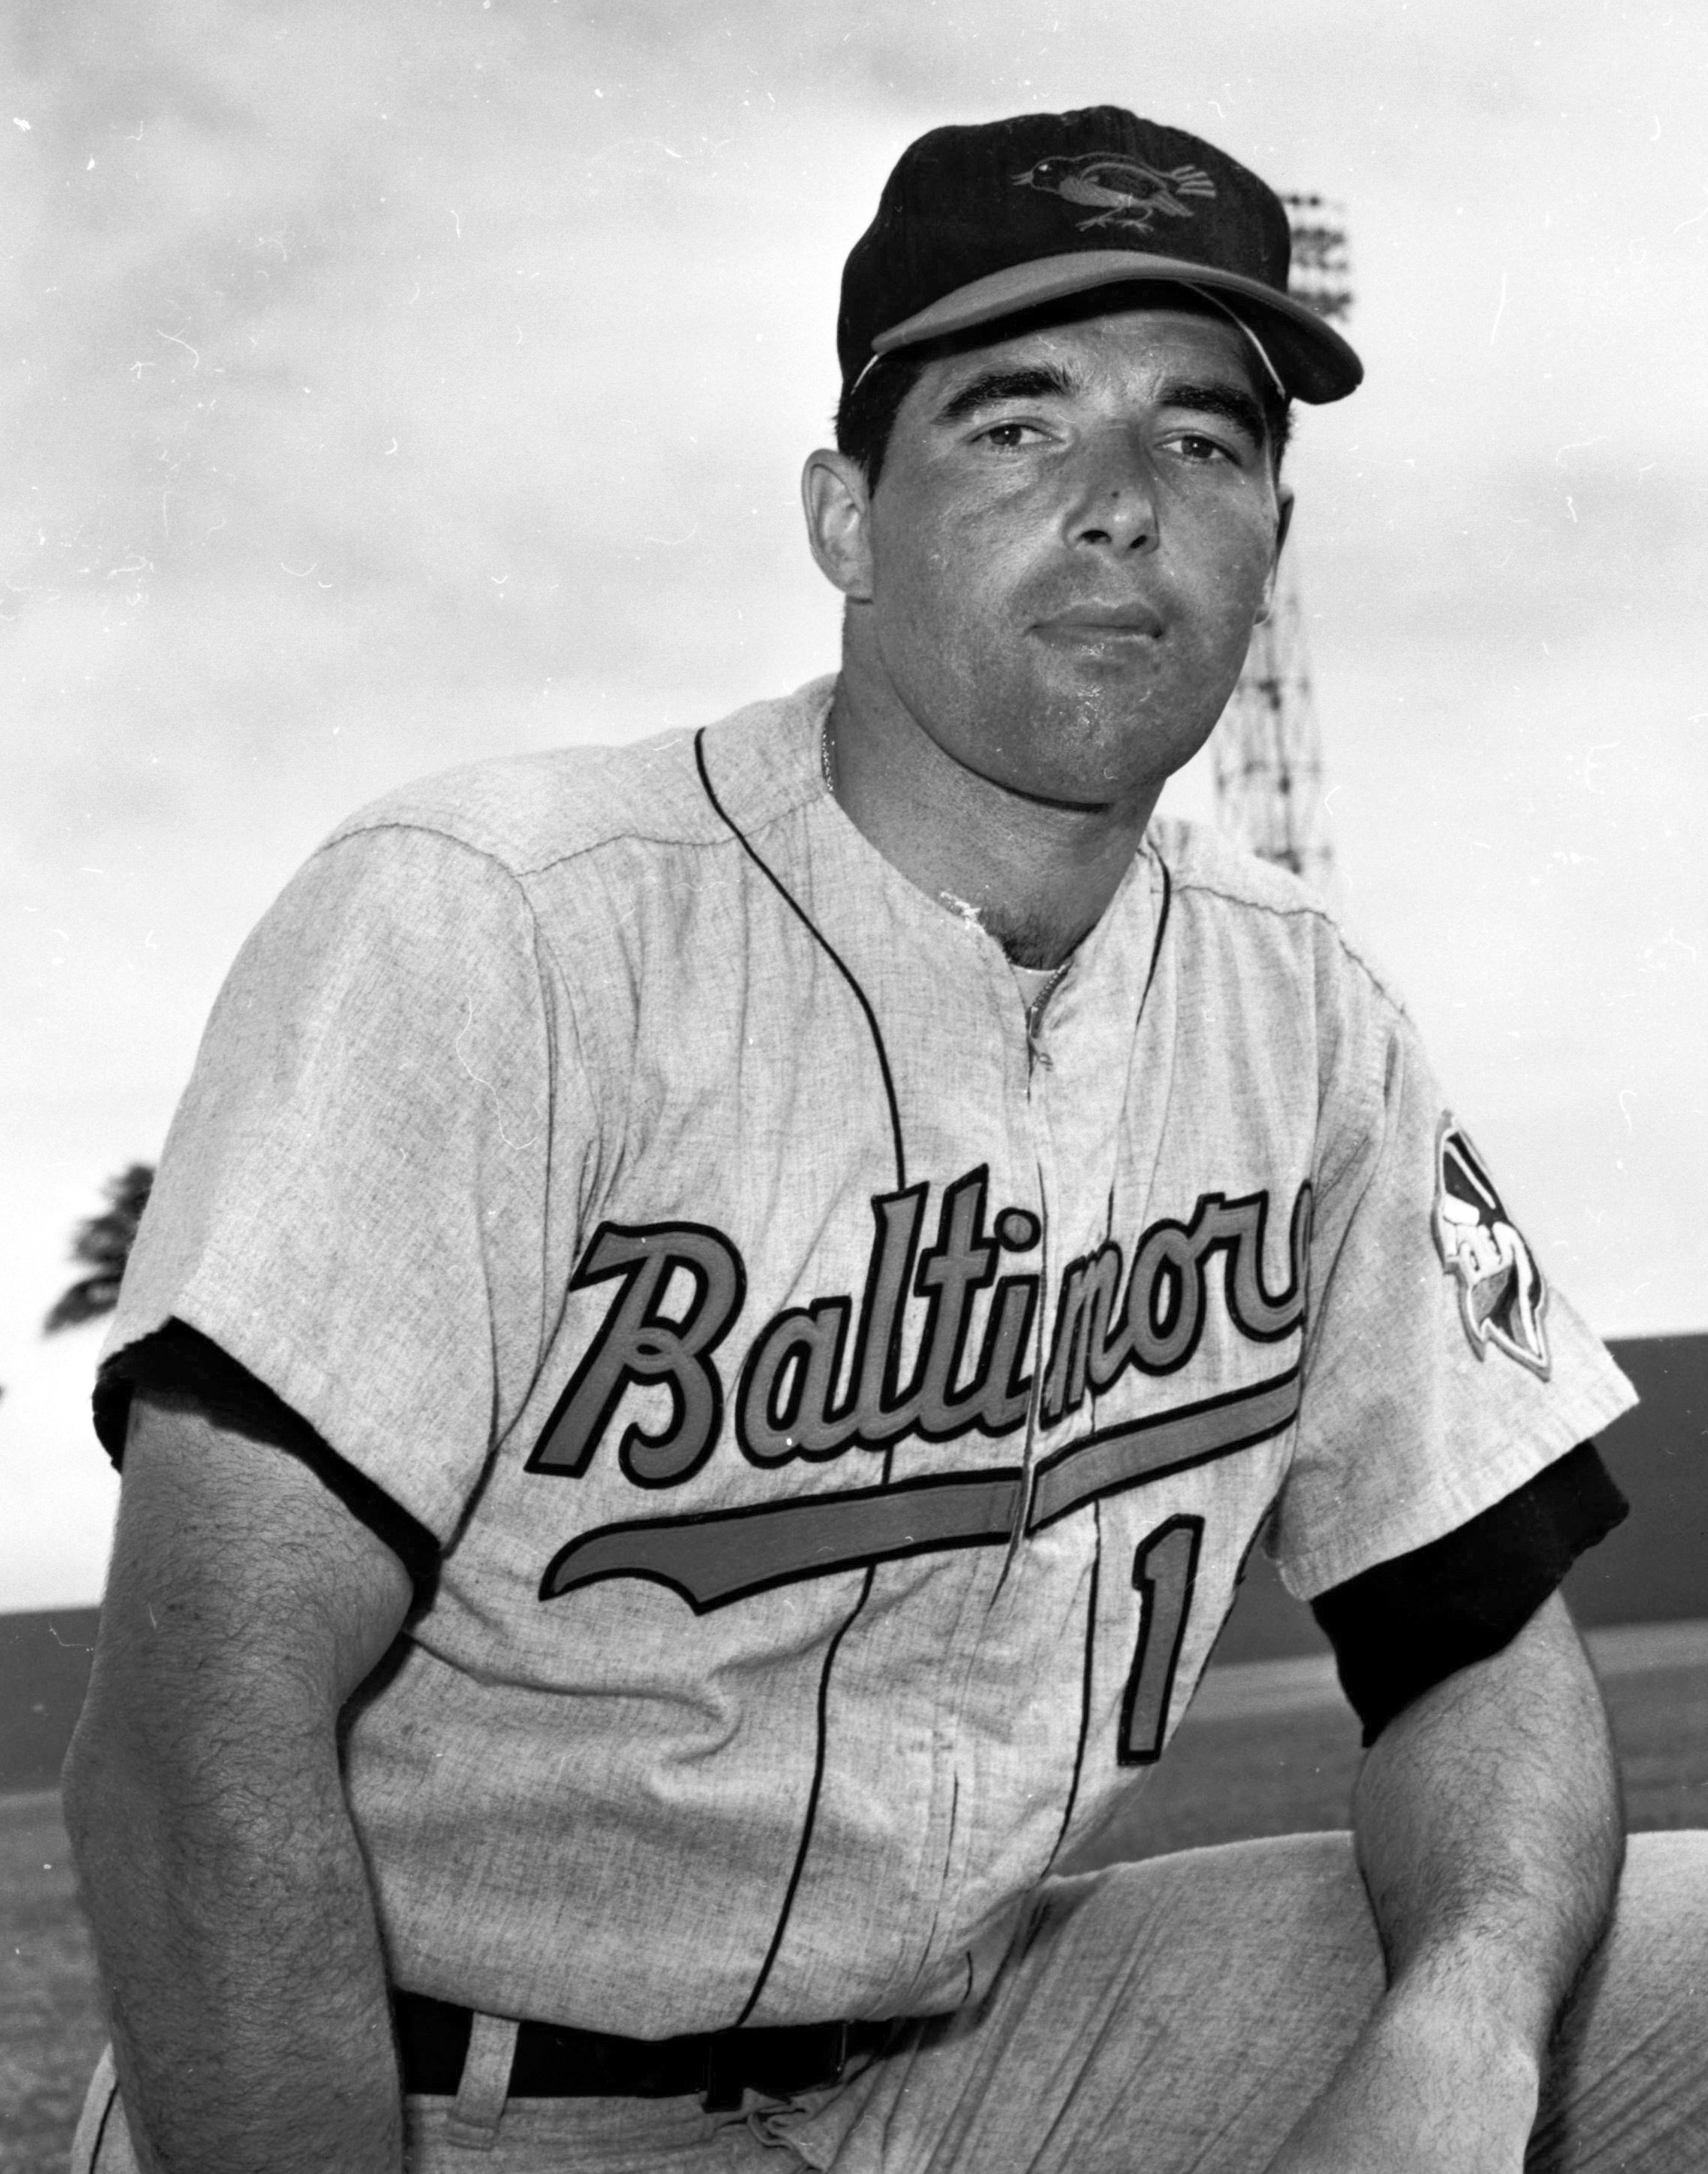 FILE - In this March 1964, file photo, Baltimore Orioles catcher John Orsino poses for a photo. Orsino, who spent seven seasons in the major leagues with the Giants (1961-62), Baltimore (1963-65) and Washington (1966-67), has died. He was 78. Orsino died